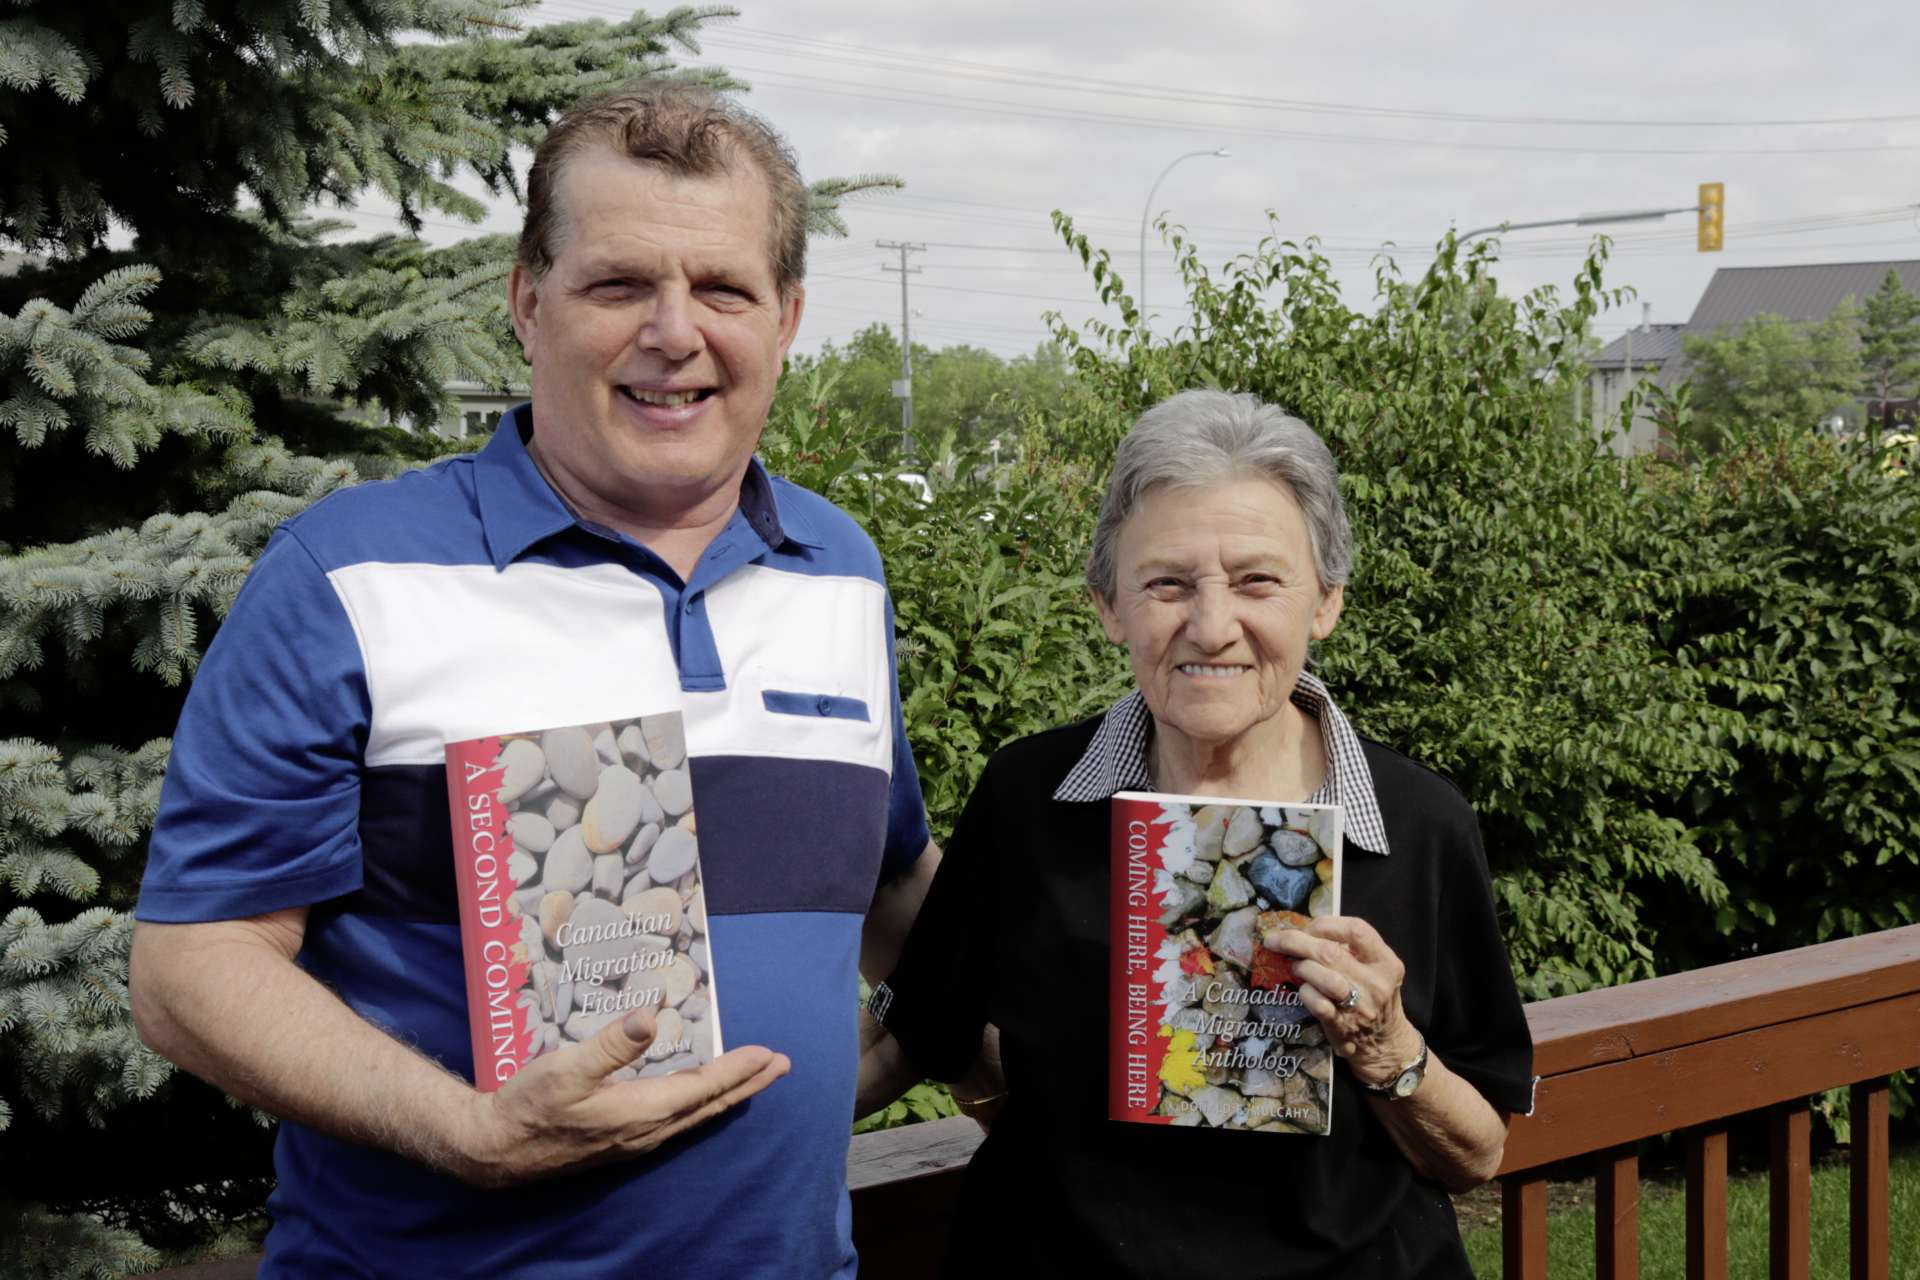 Ron Romanowski (left) and Libby Simon hold the two books in which their stories are featured. They will be at McNally Robinson for a duo-book launch Sept. 23.